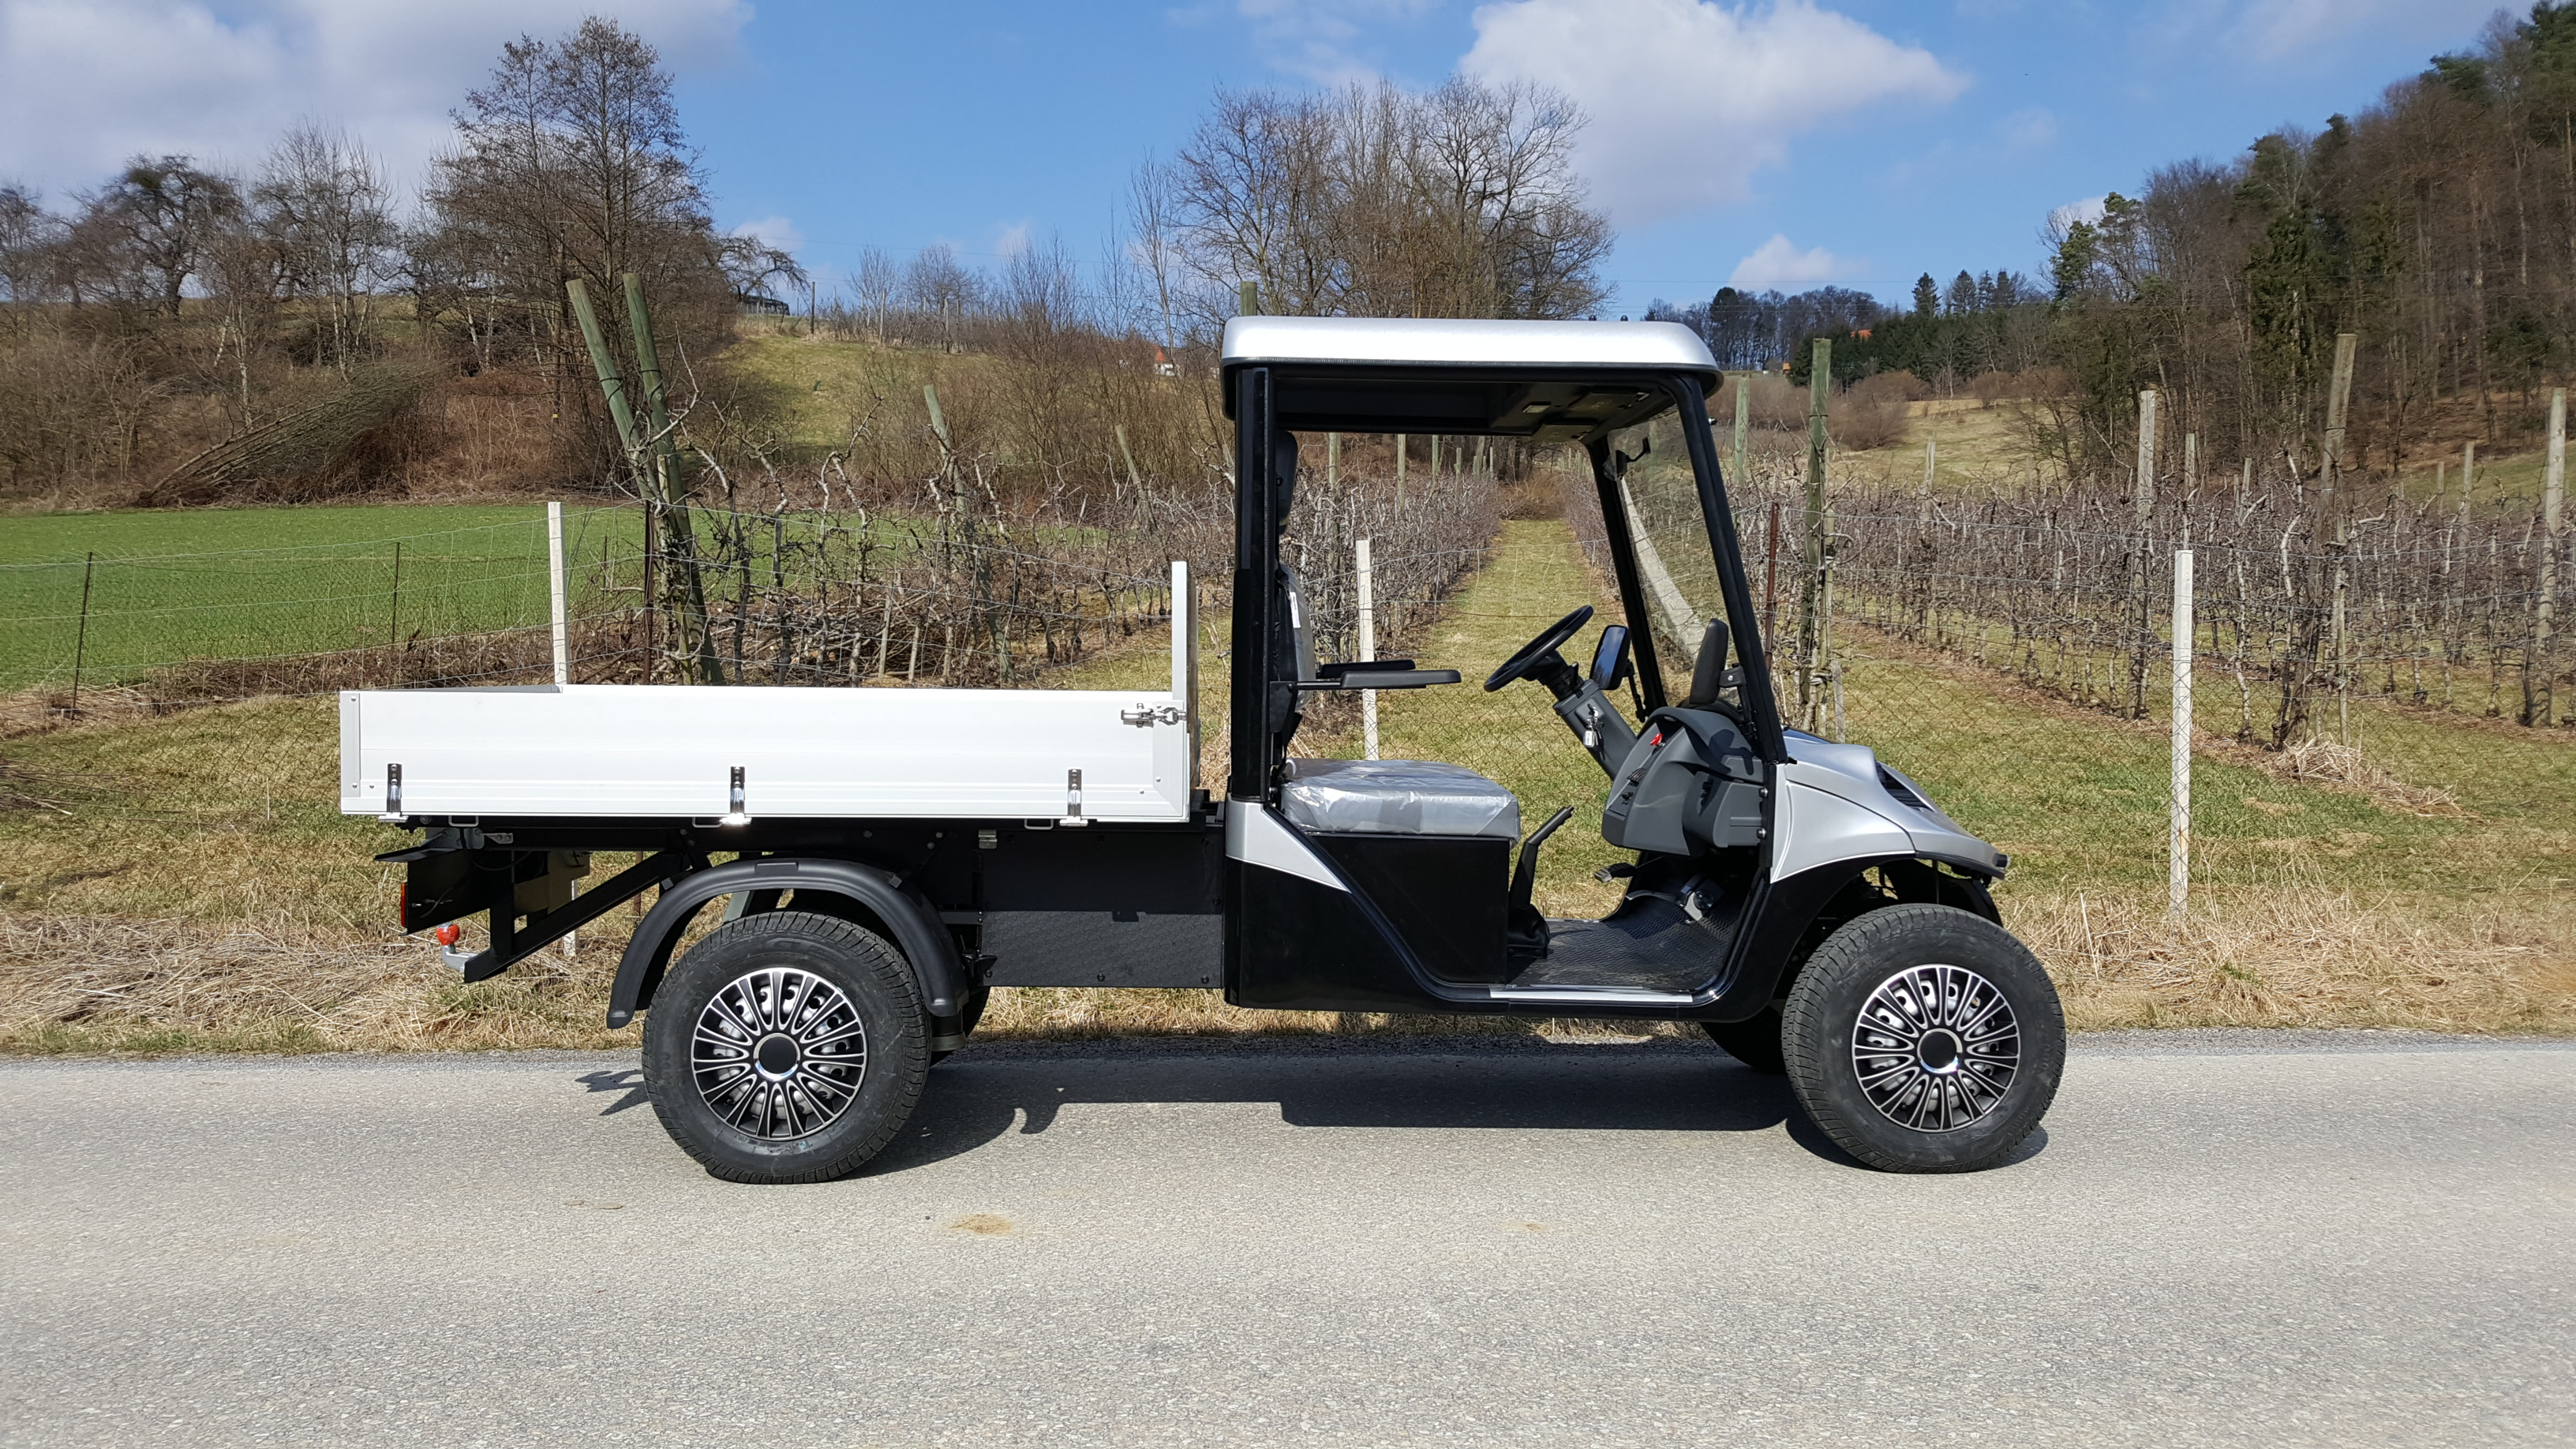 elektrofahrzeug mit strassenzulassung maier 39 s golfcarts. Black Bedroom Furniture Sets. Home Design Ideas